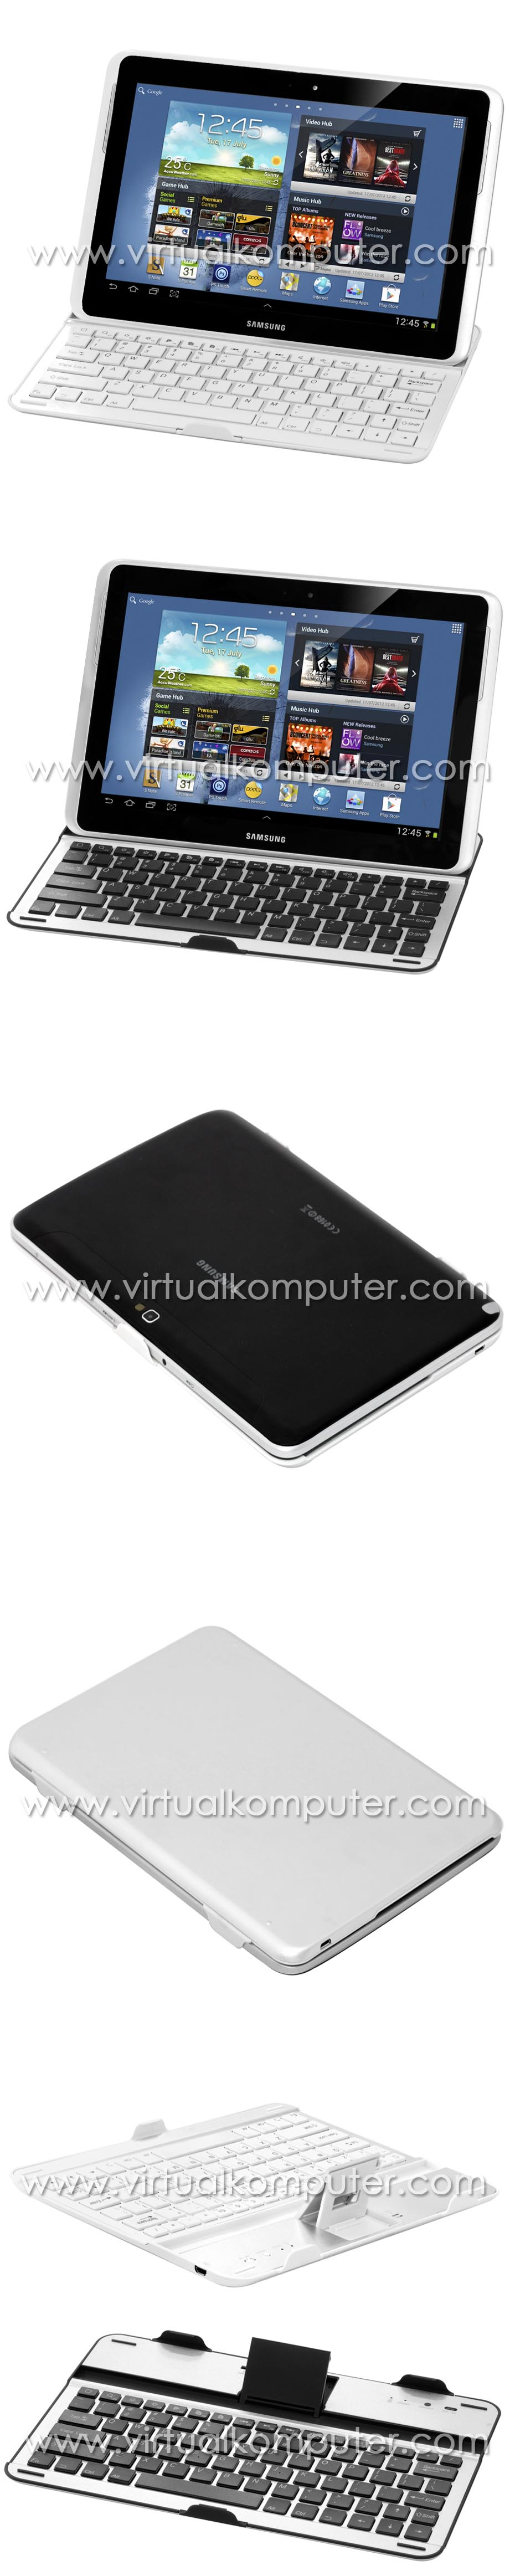 Ultra Slim Keyboard for Samsung Galaxy Note 10.1 N8000 Overview